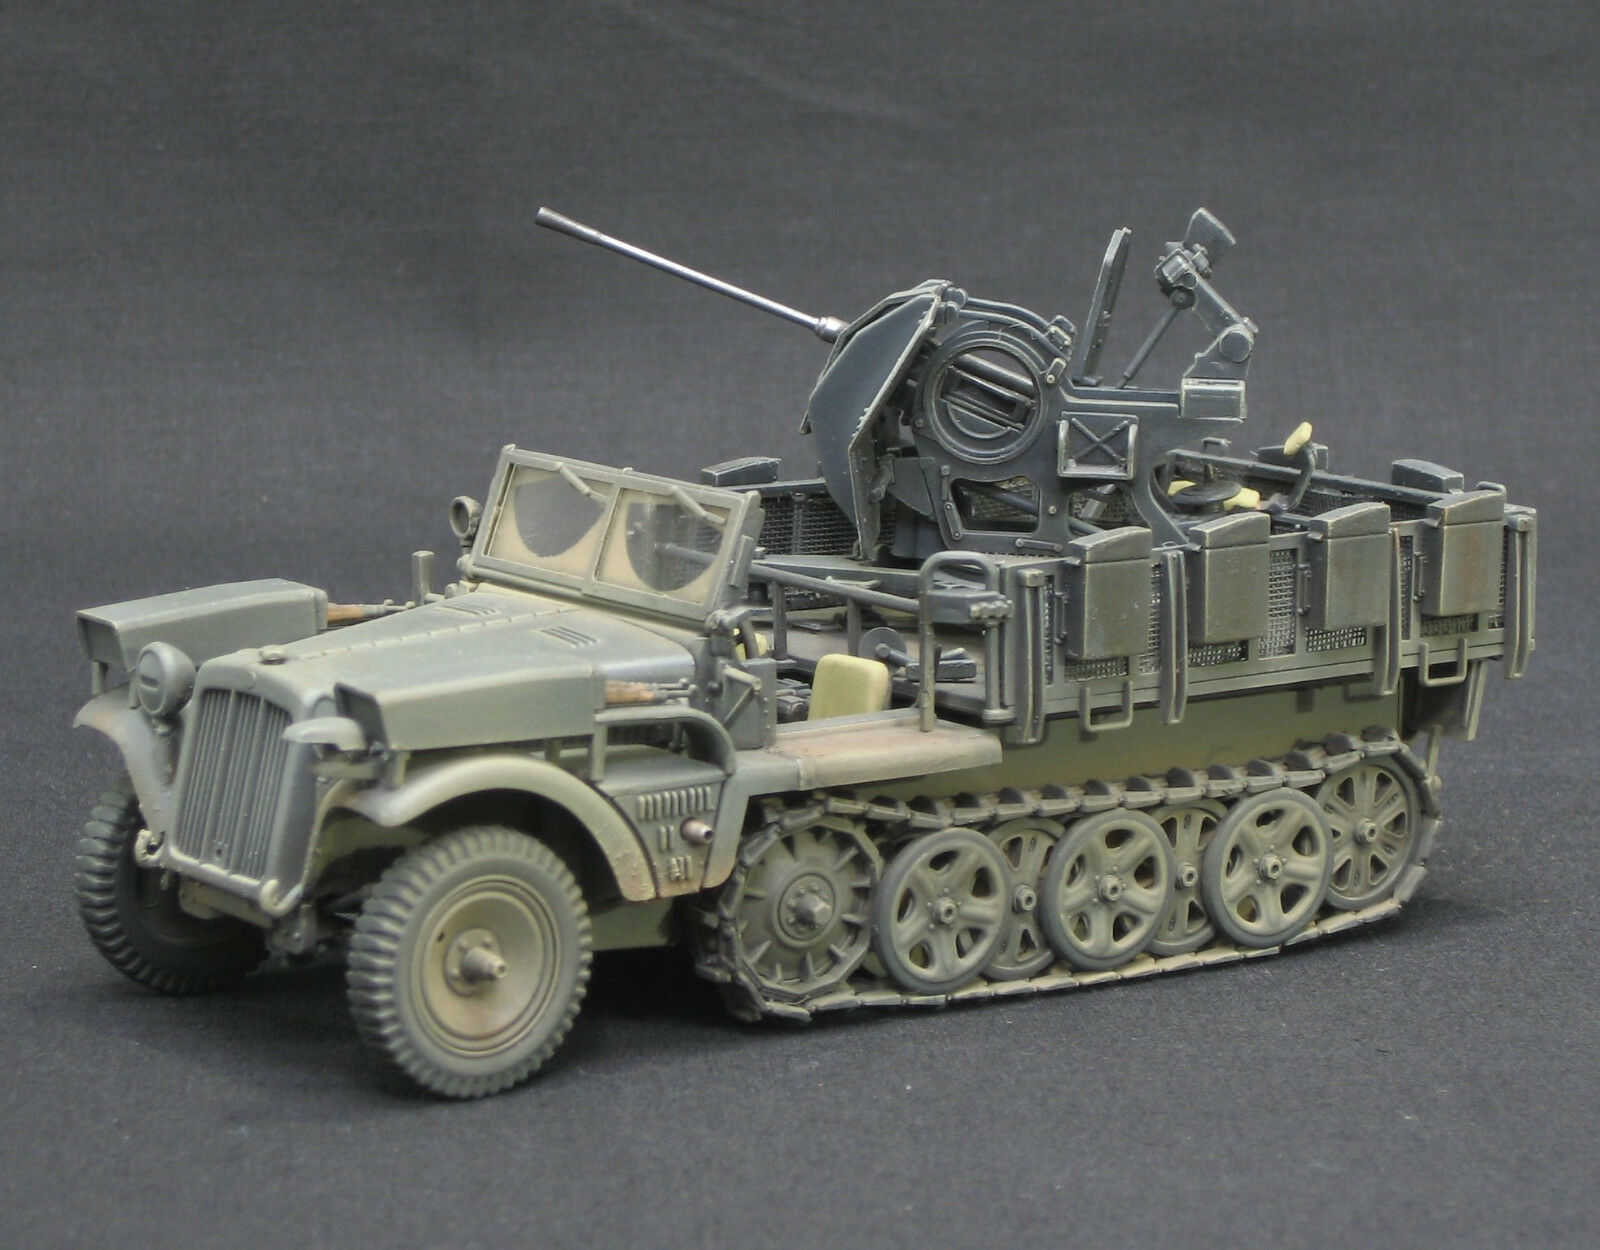 SdKfz 10 5 2Cm Flak 38  DRAGON PRO  BUILT AND PAINTED 1 35   MODEL , TAMIYA,  magasin d'usine de sortie